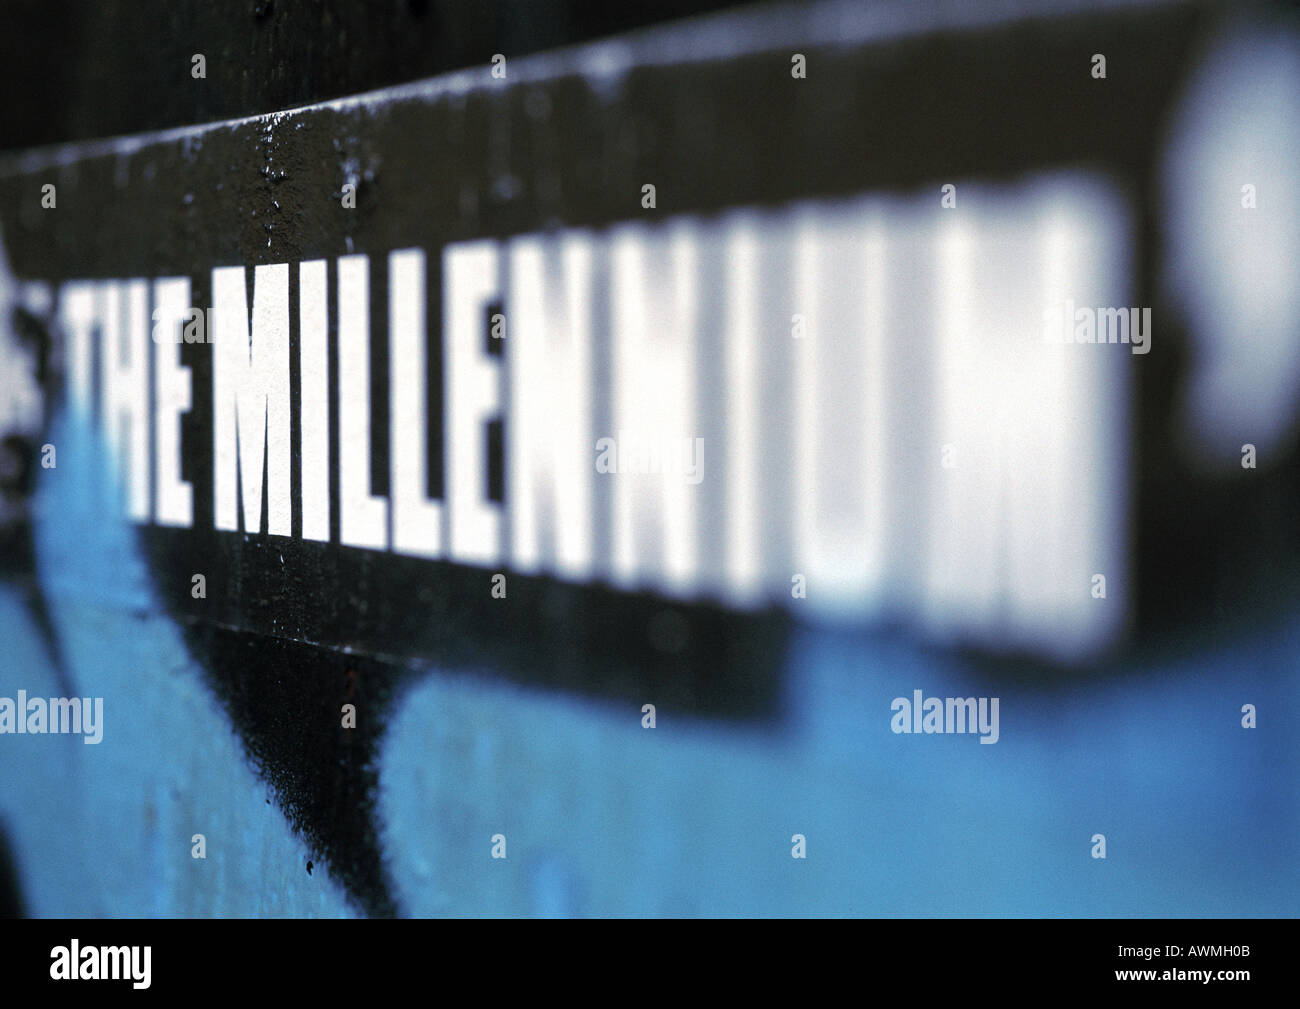 The millenium text printed in capital letters, blurred - Stock Image